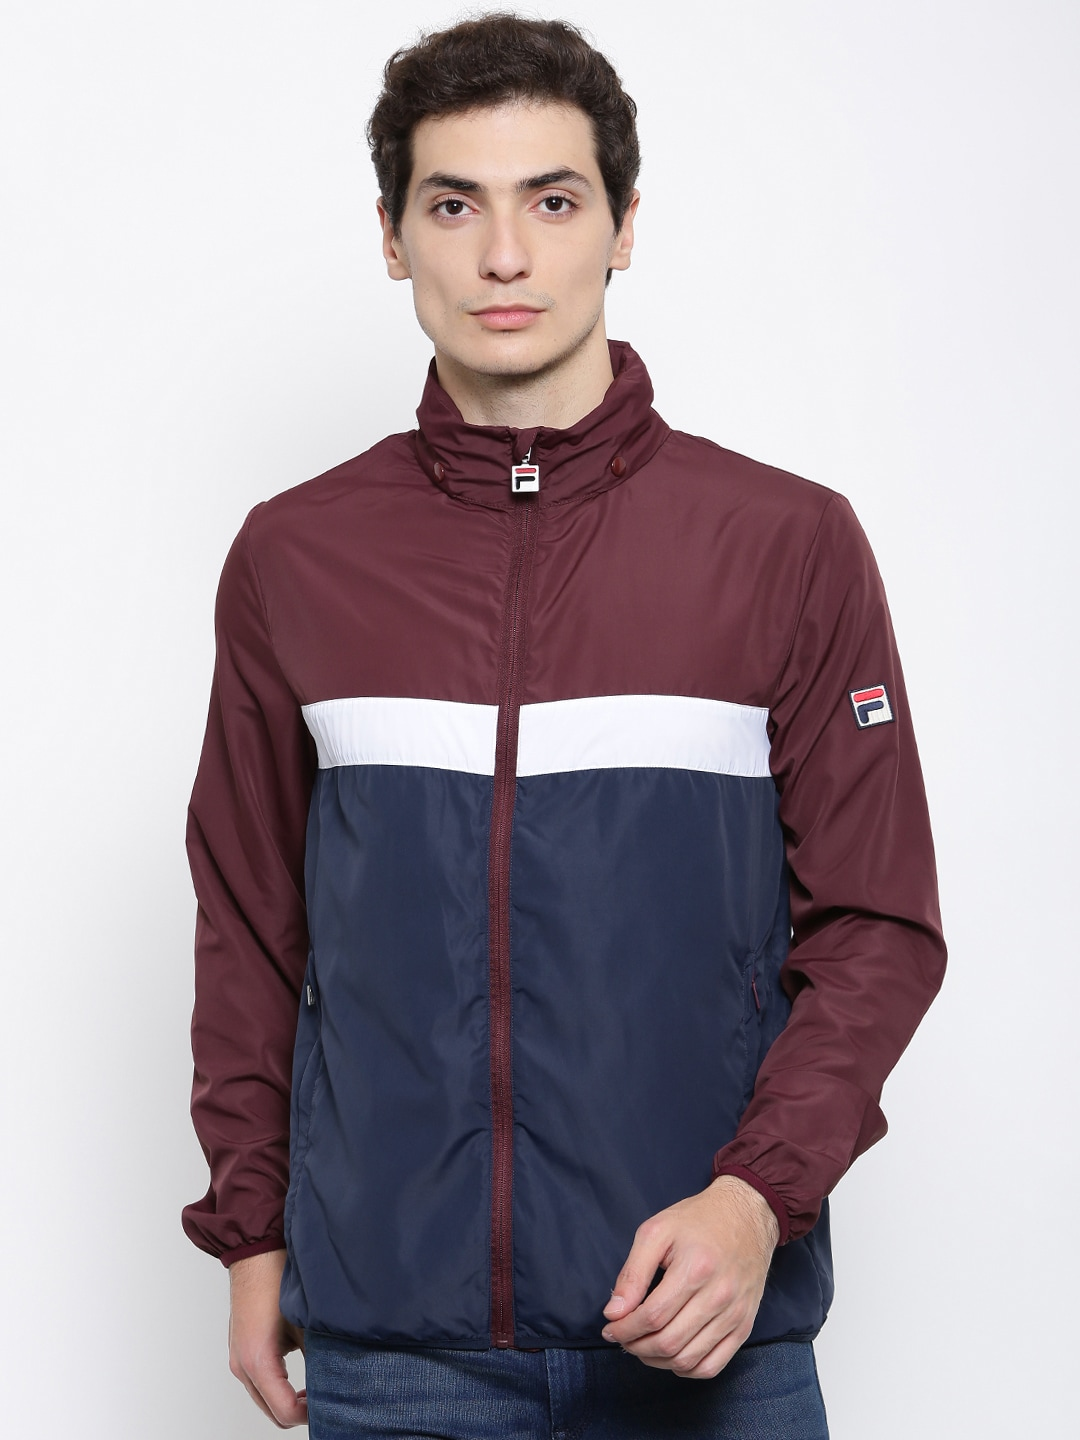 199699dc80aa Fila Rain Jackets Jacket - Buy Fila Rain Jackets Jacket online in India